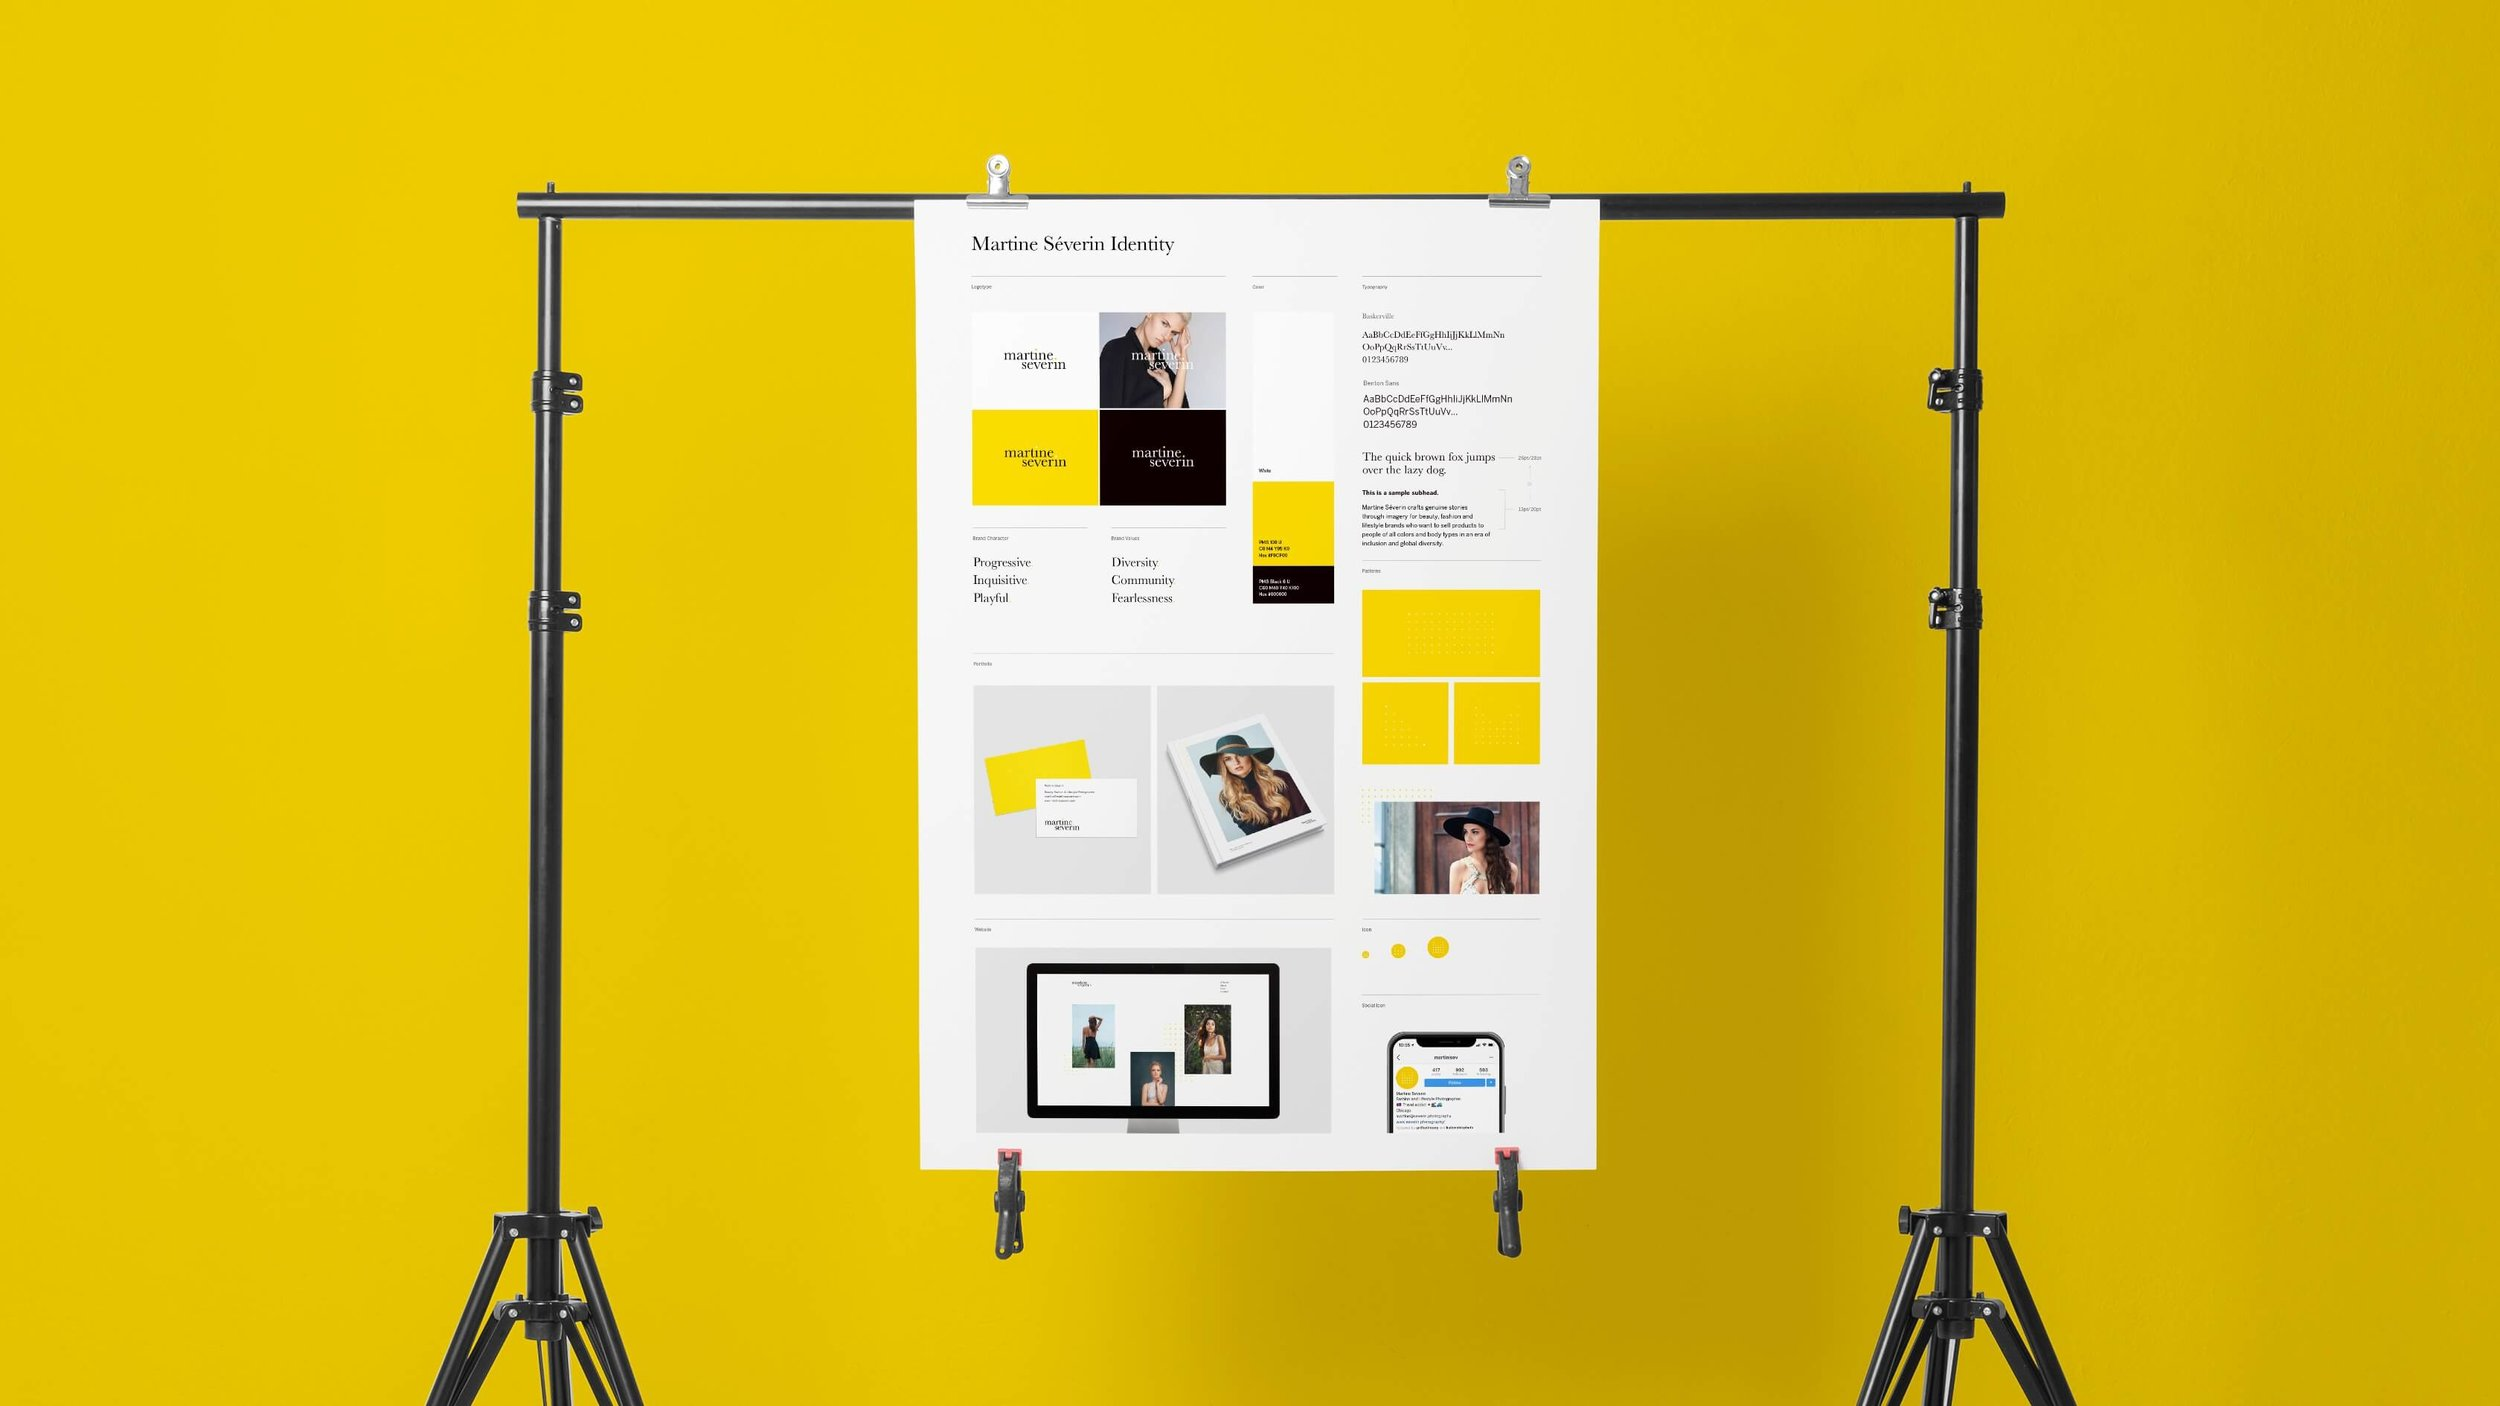 Martine Severin Brand Identity Toolkit